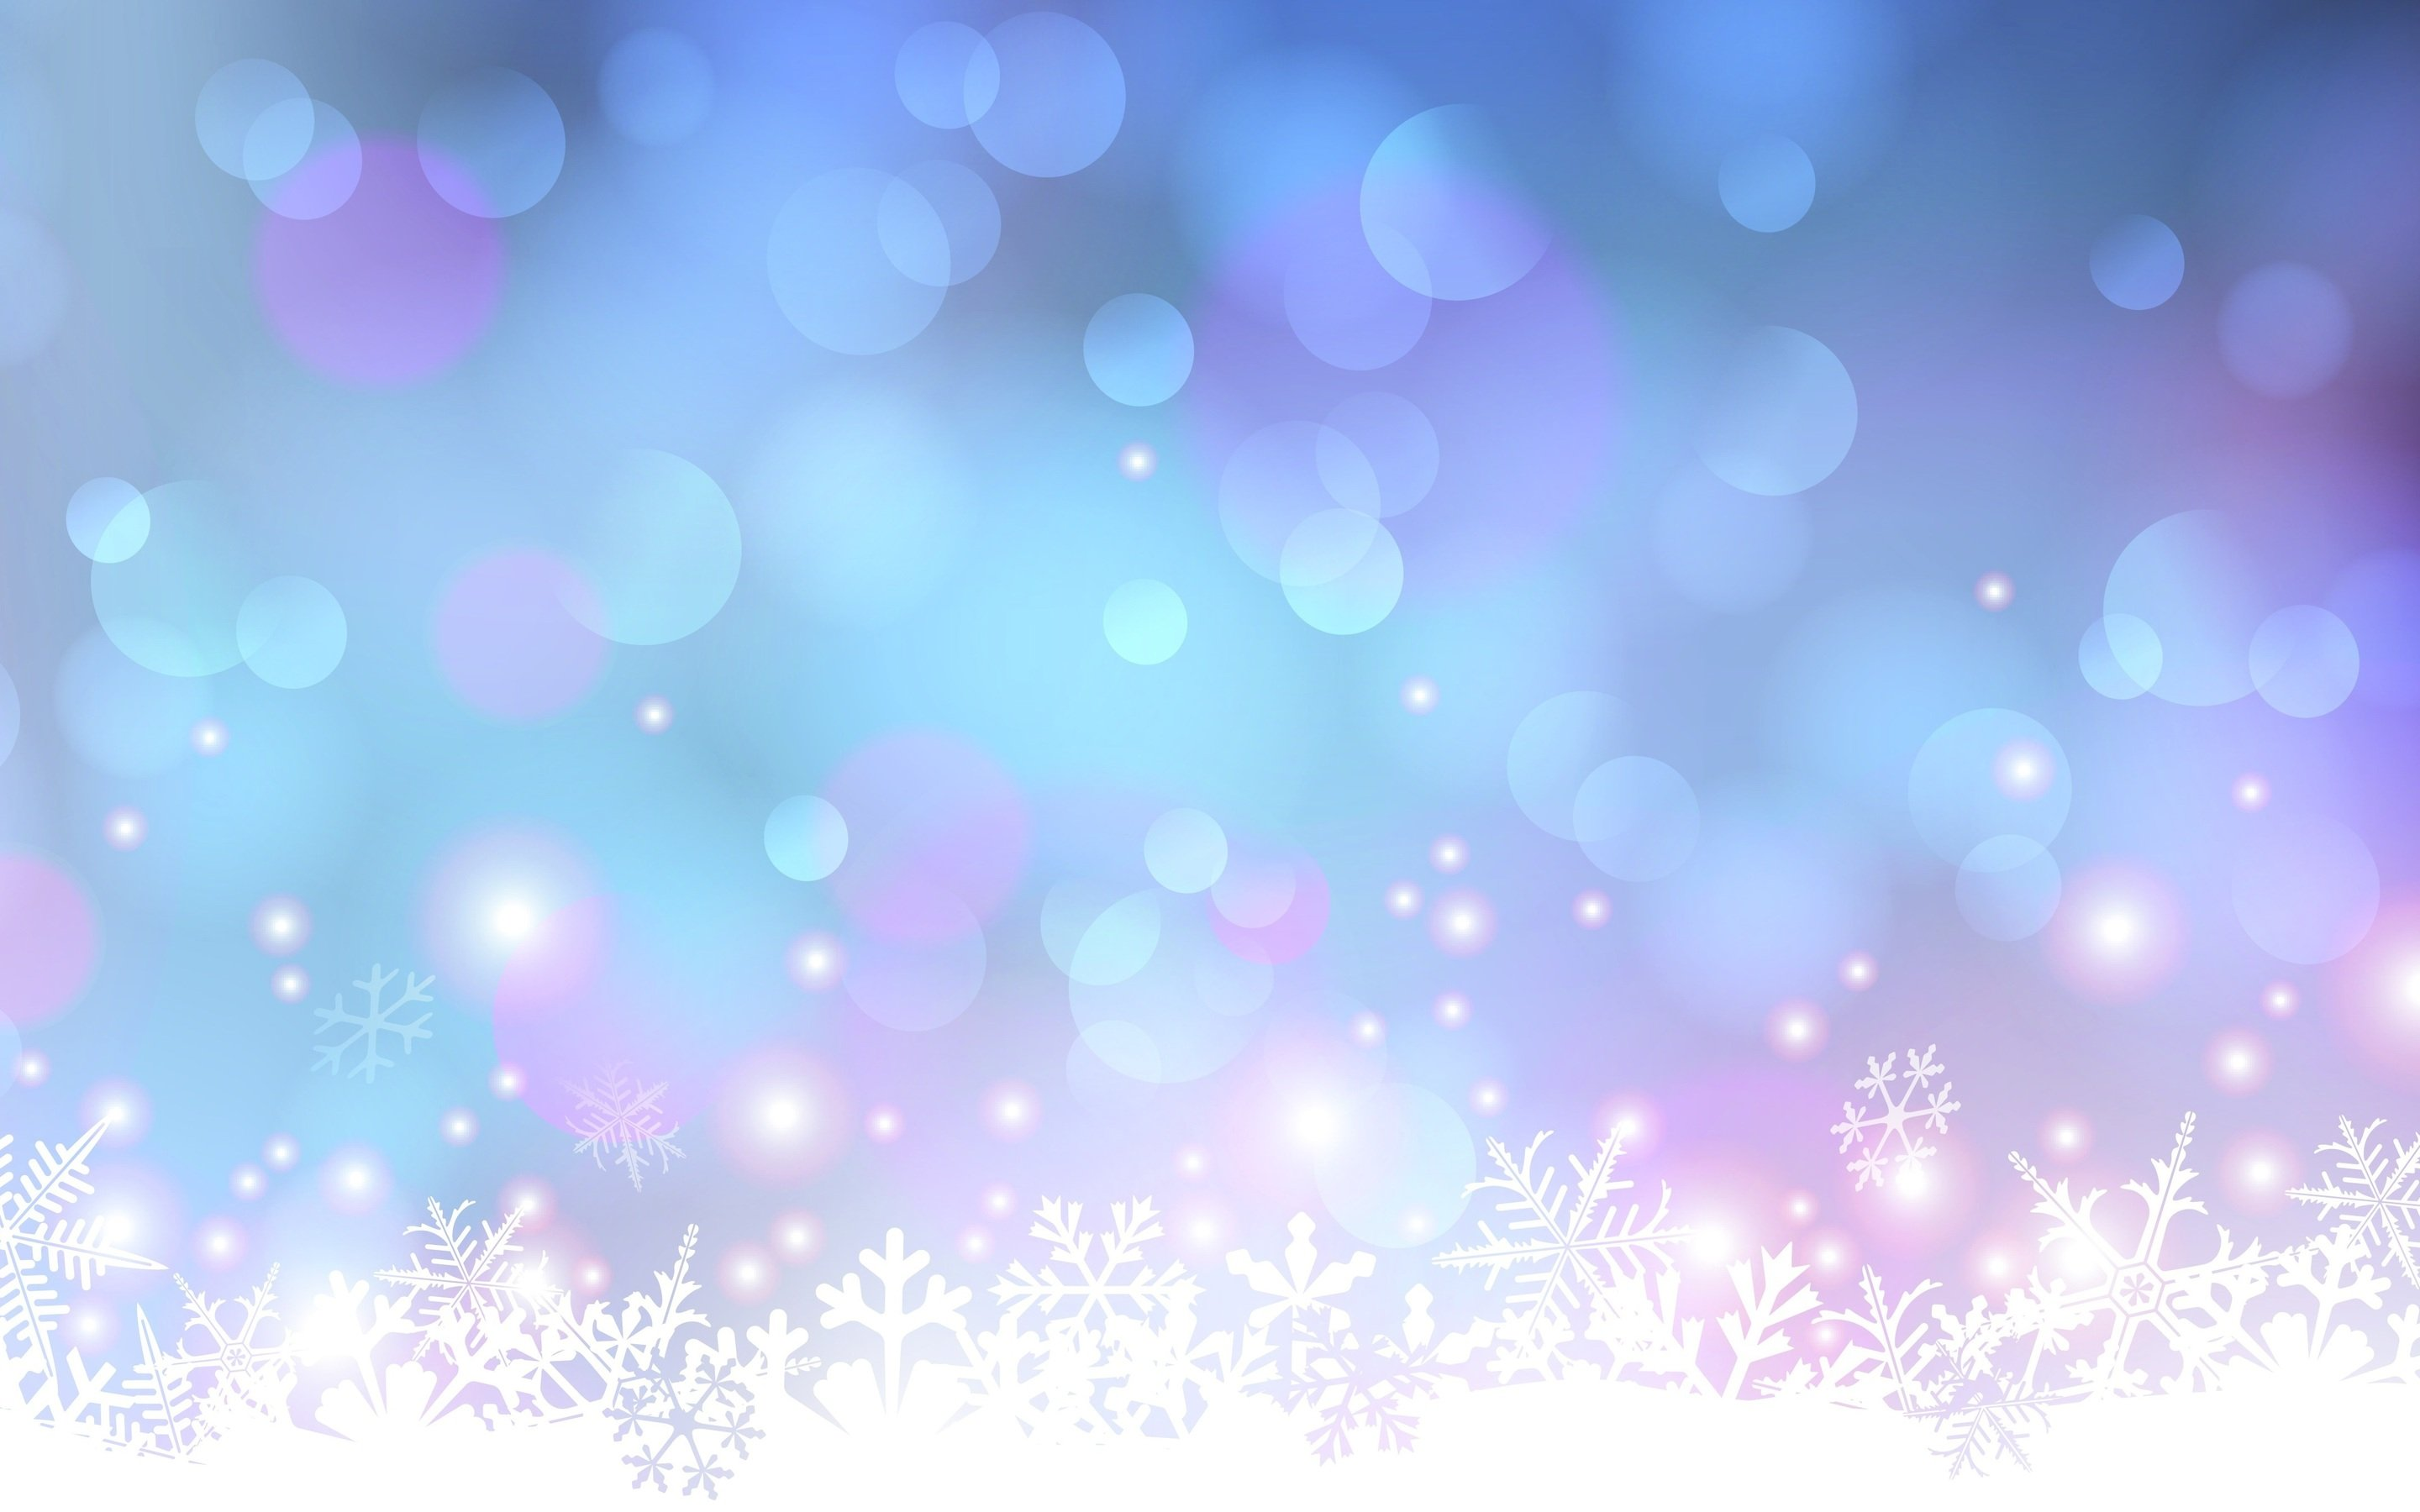 Holiday HD Wallpaper | Holiday Backgrounds | Cool Wallpapers